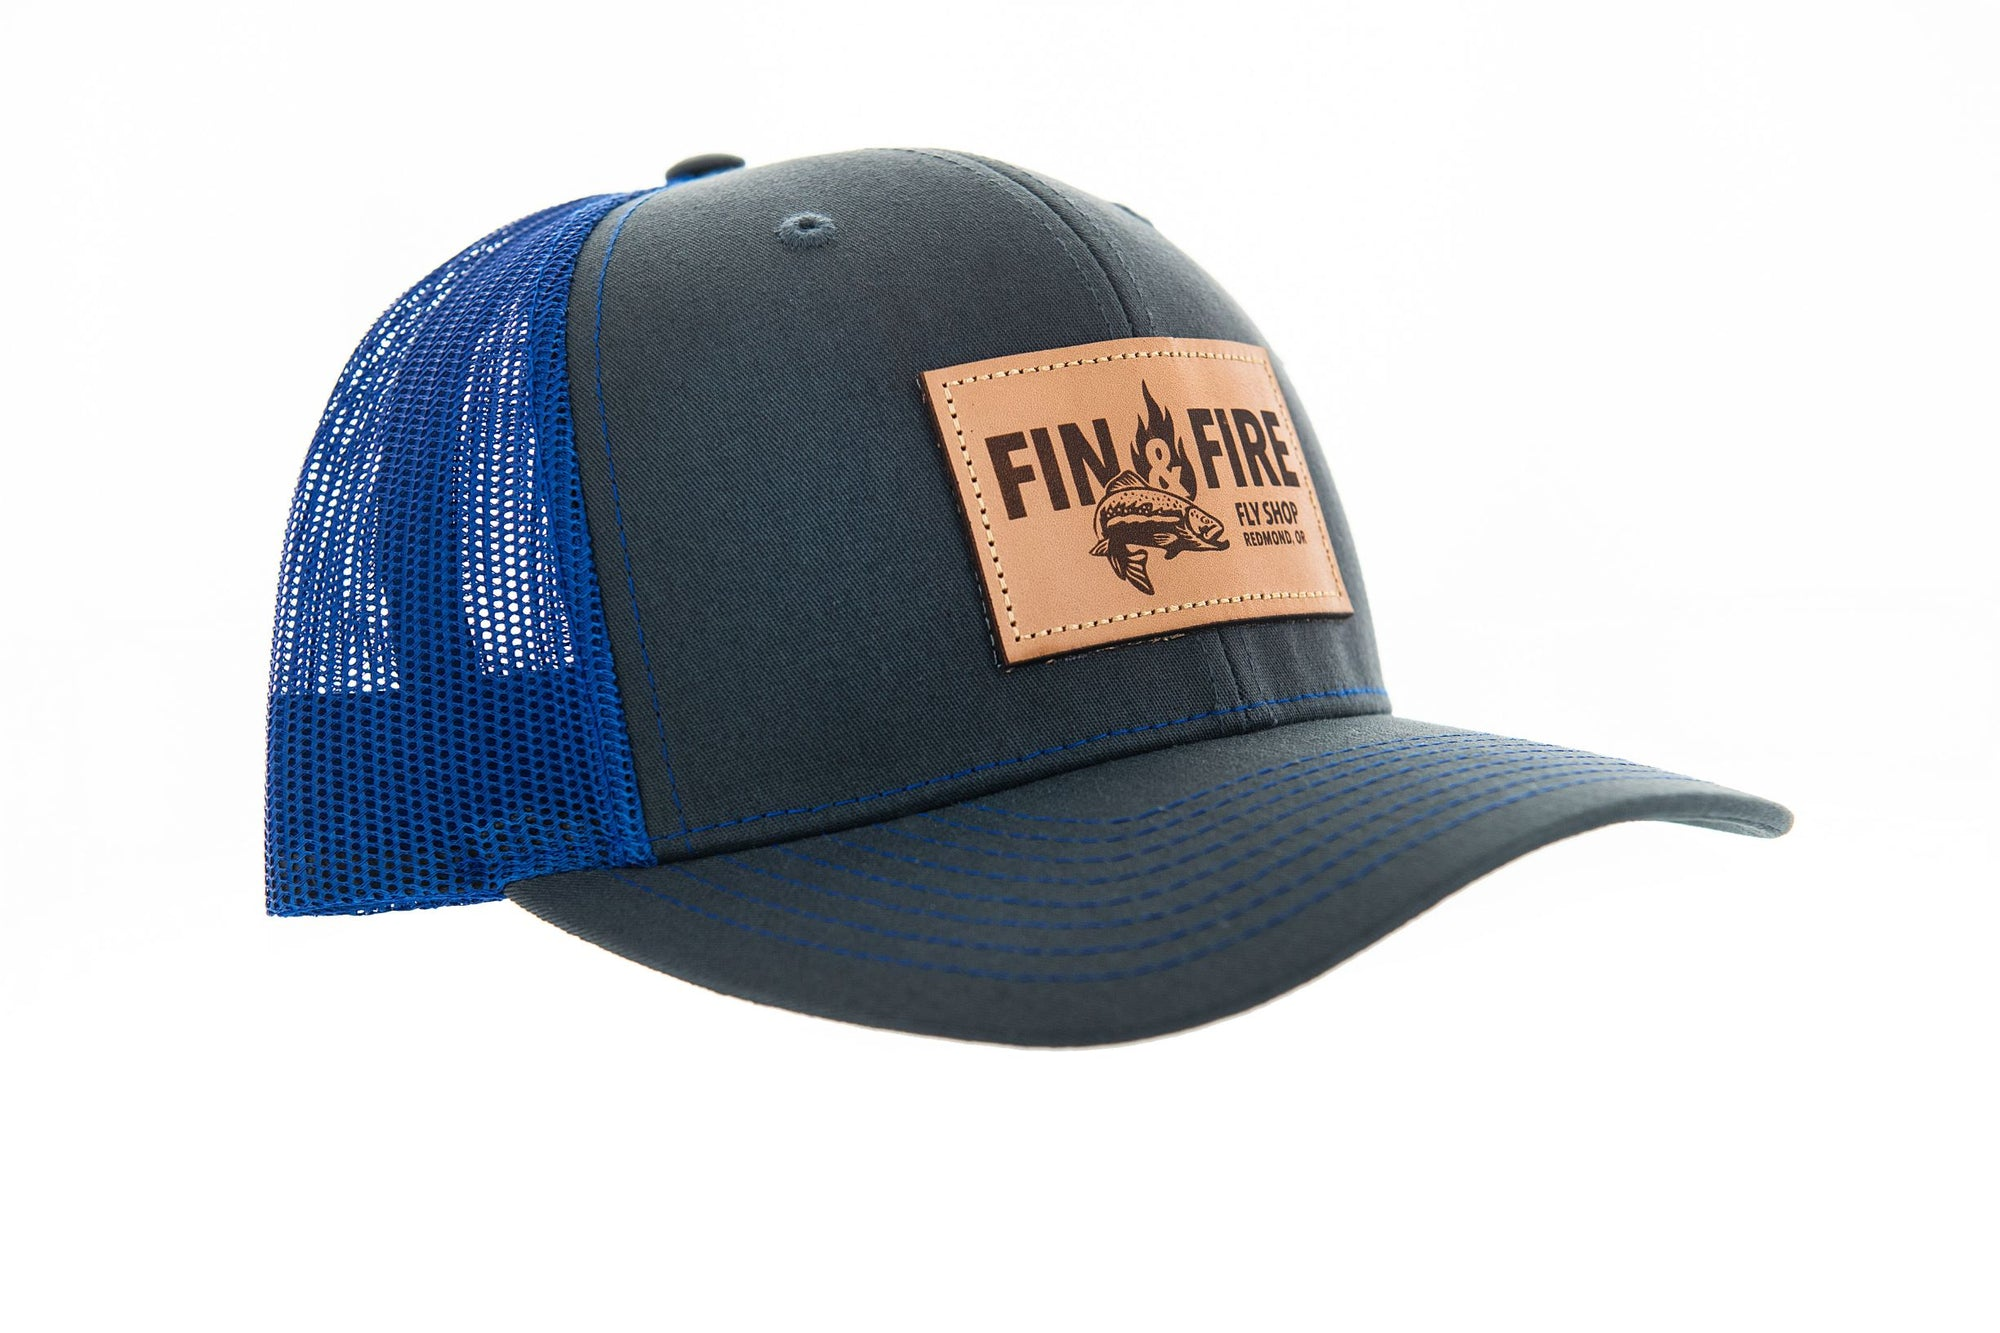 Fin & Fire Logo Hat: Charcoal/Royal Blue